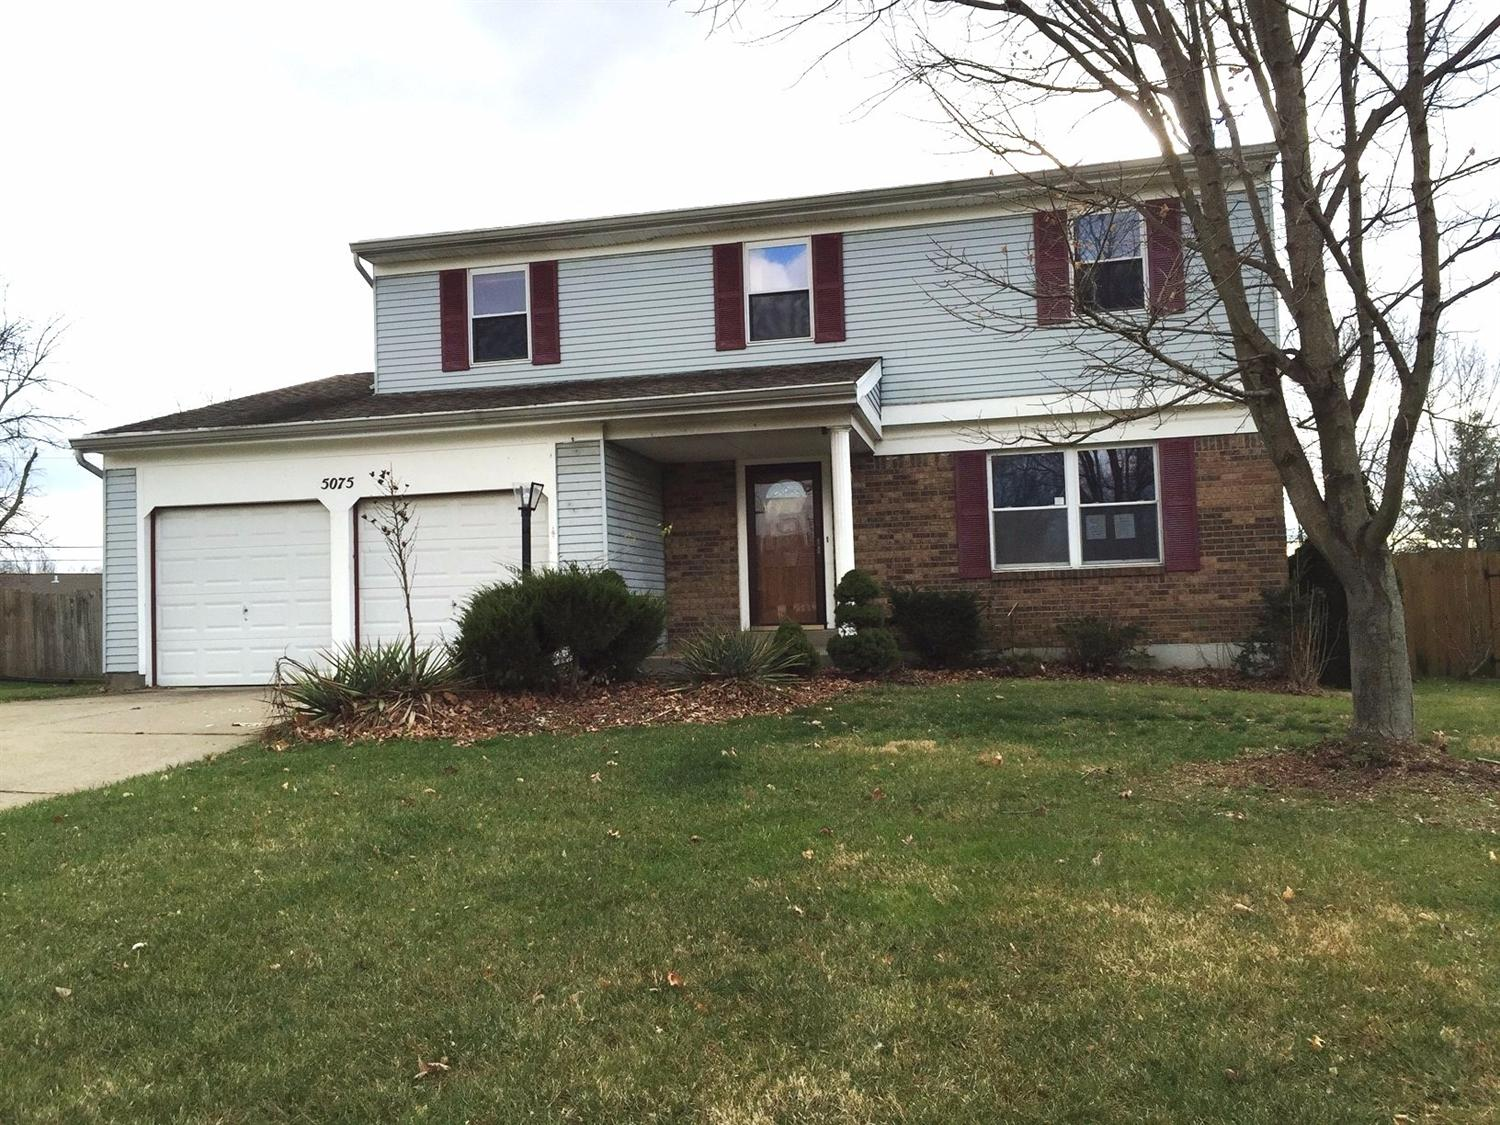 Photo 1 for 5075 Flintlock Dr Burlington, KY 41005